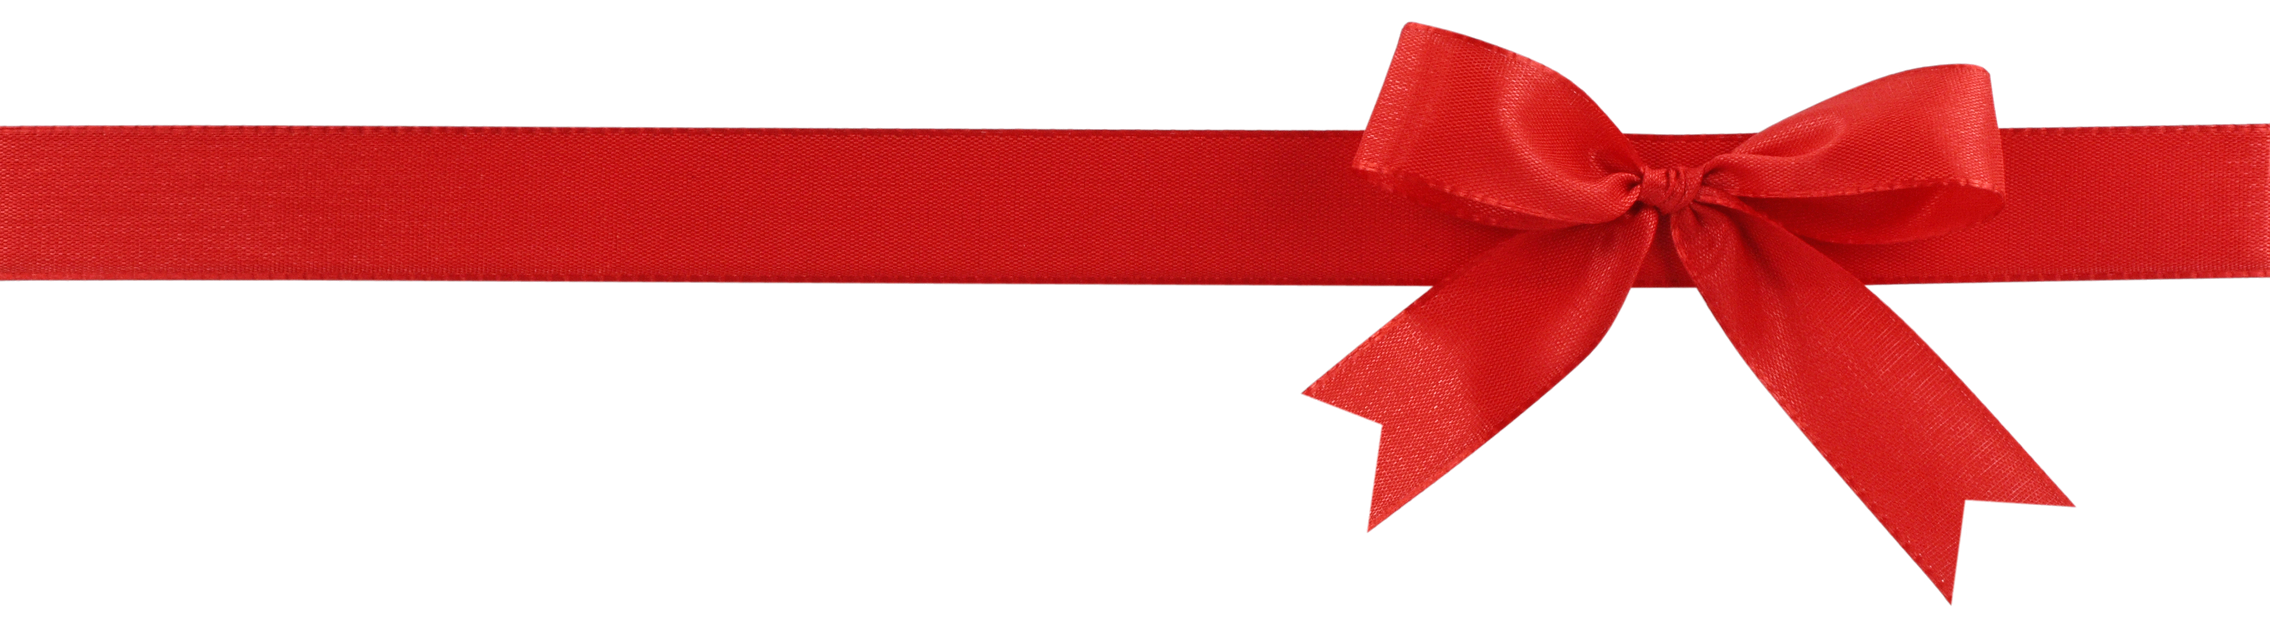 Red Gift Bow Png Images image #44527